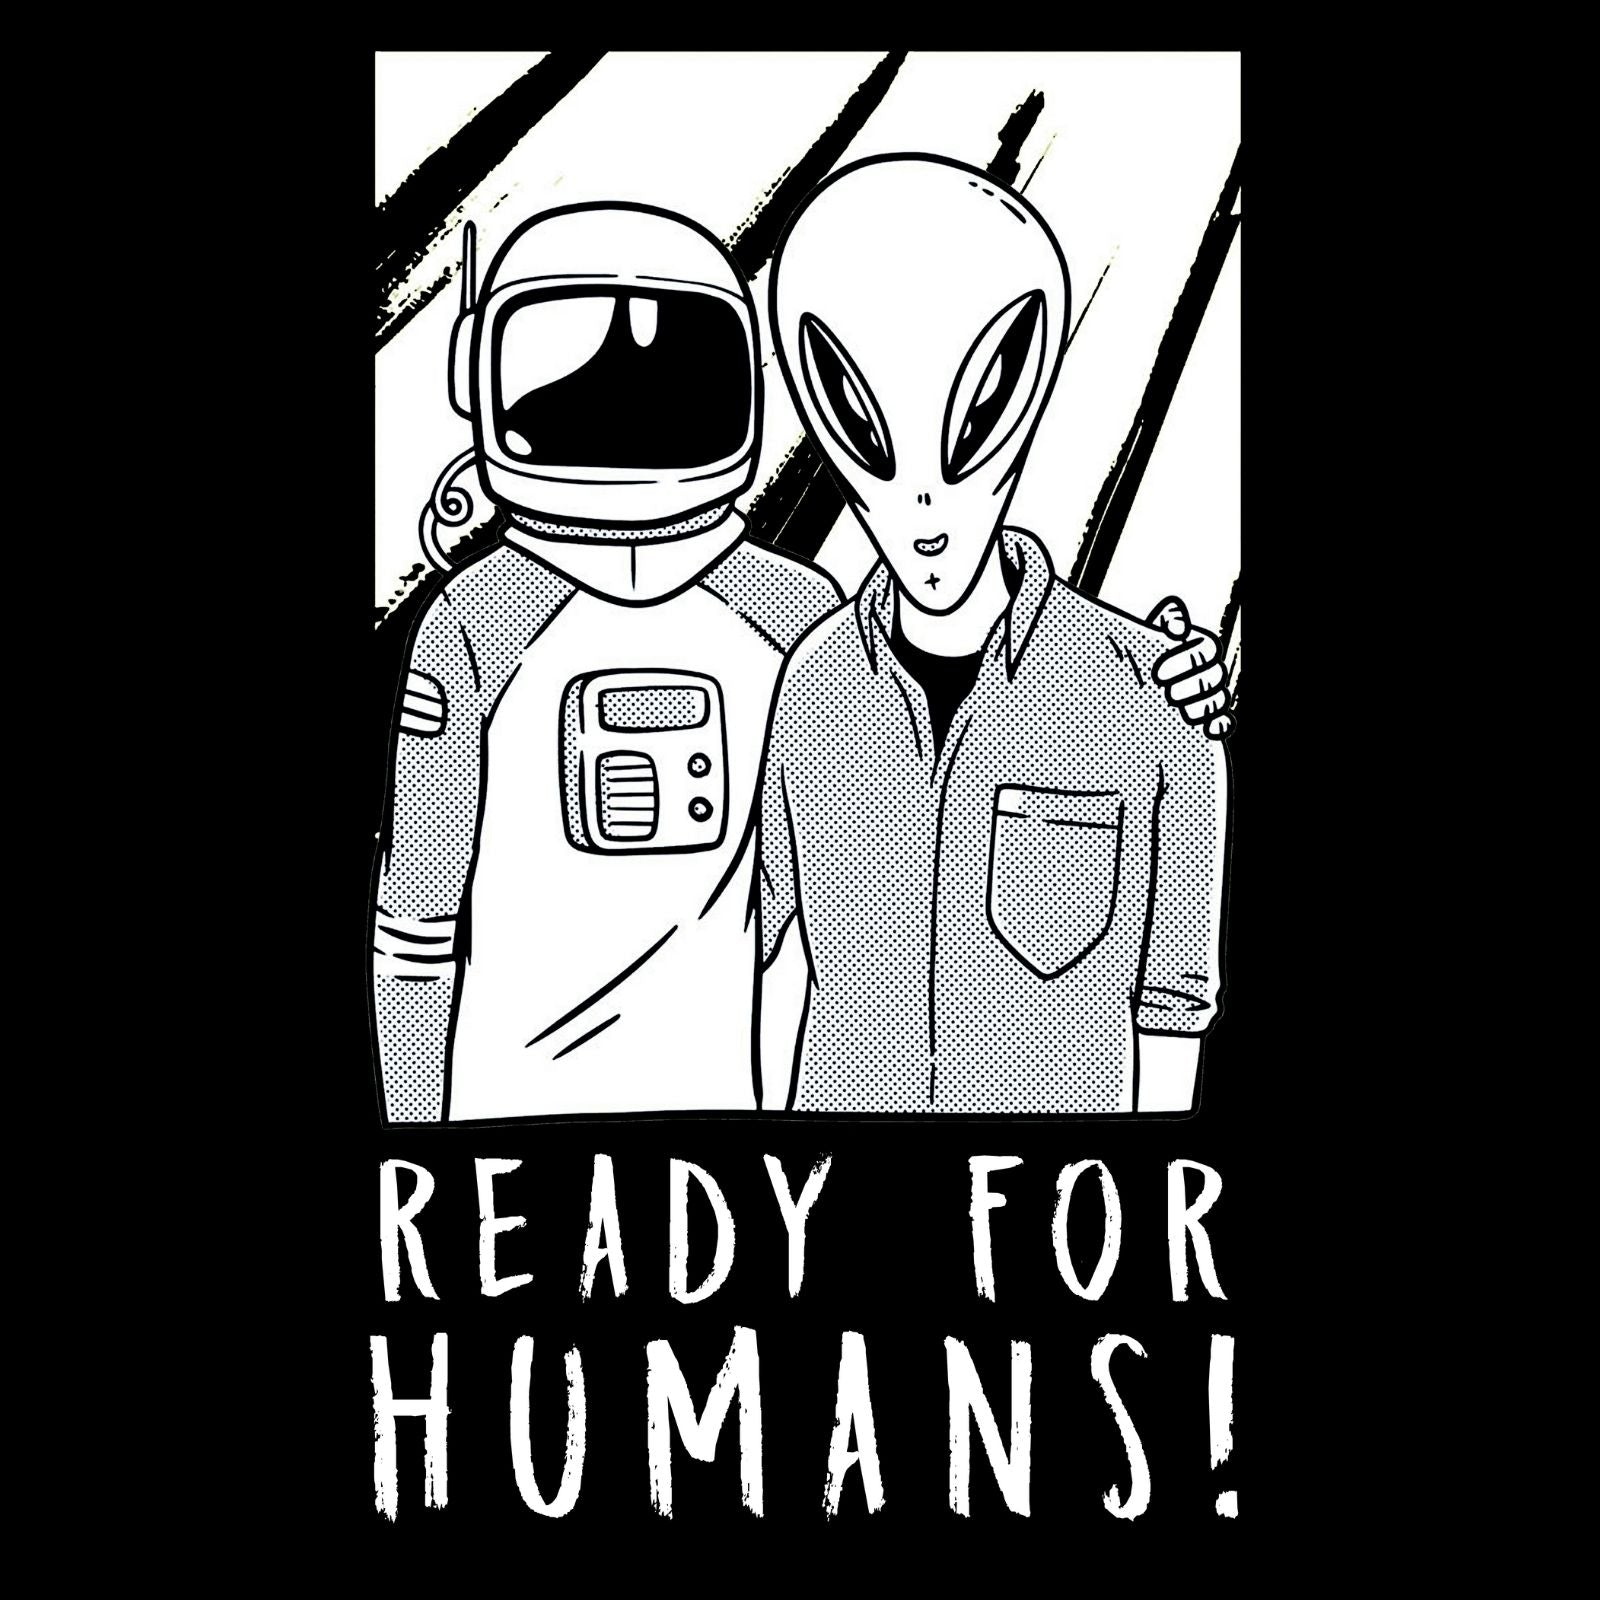 Ready For Humans - Bastard Graphics